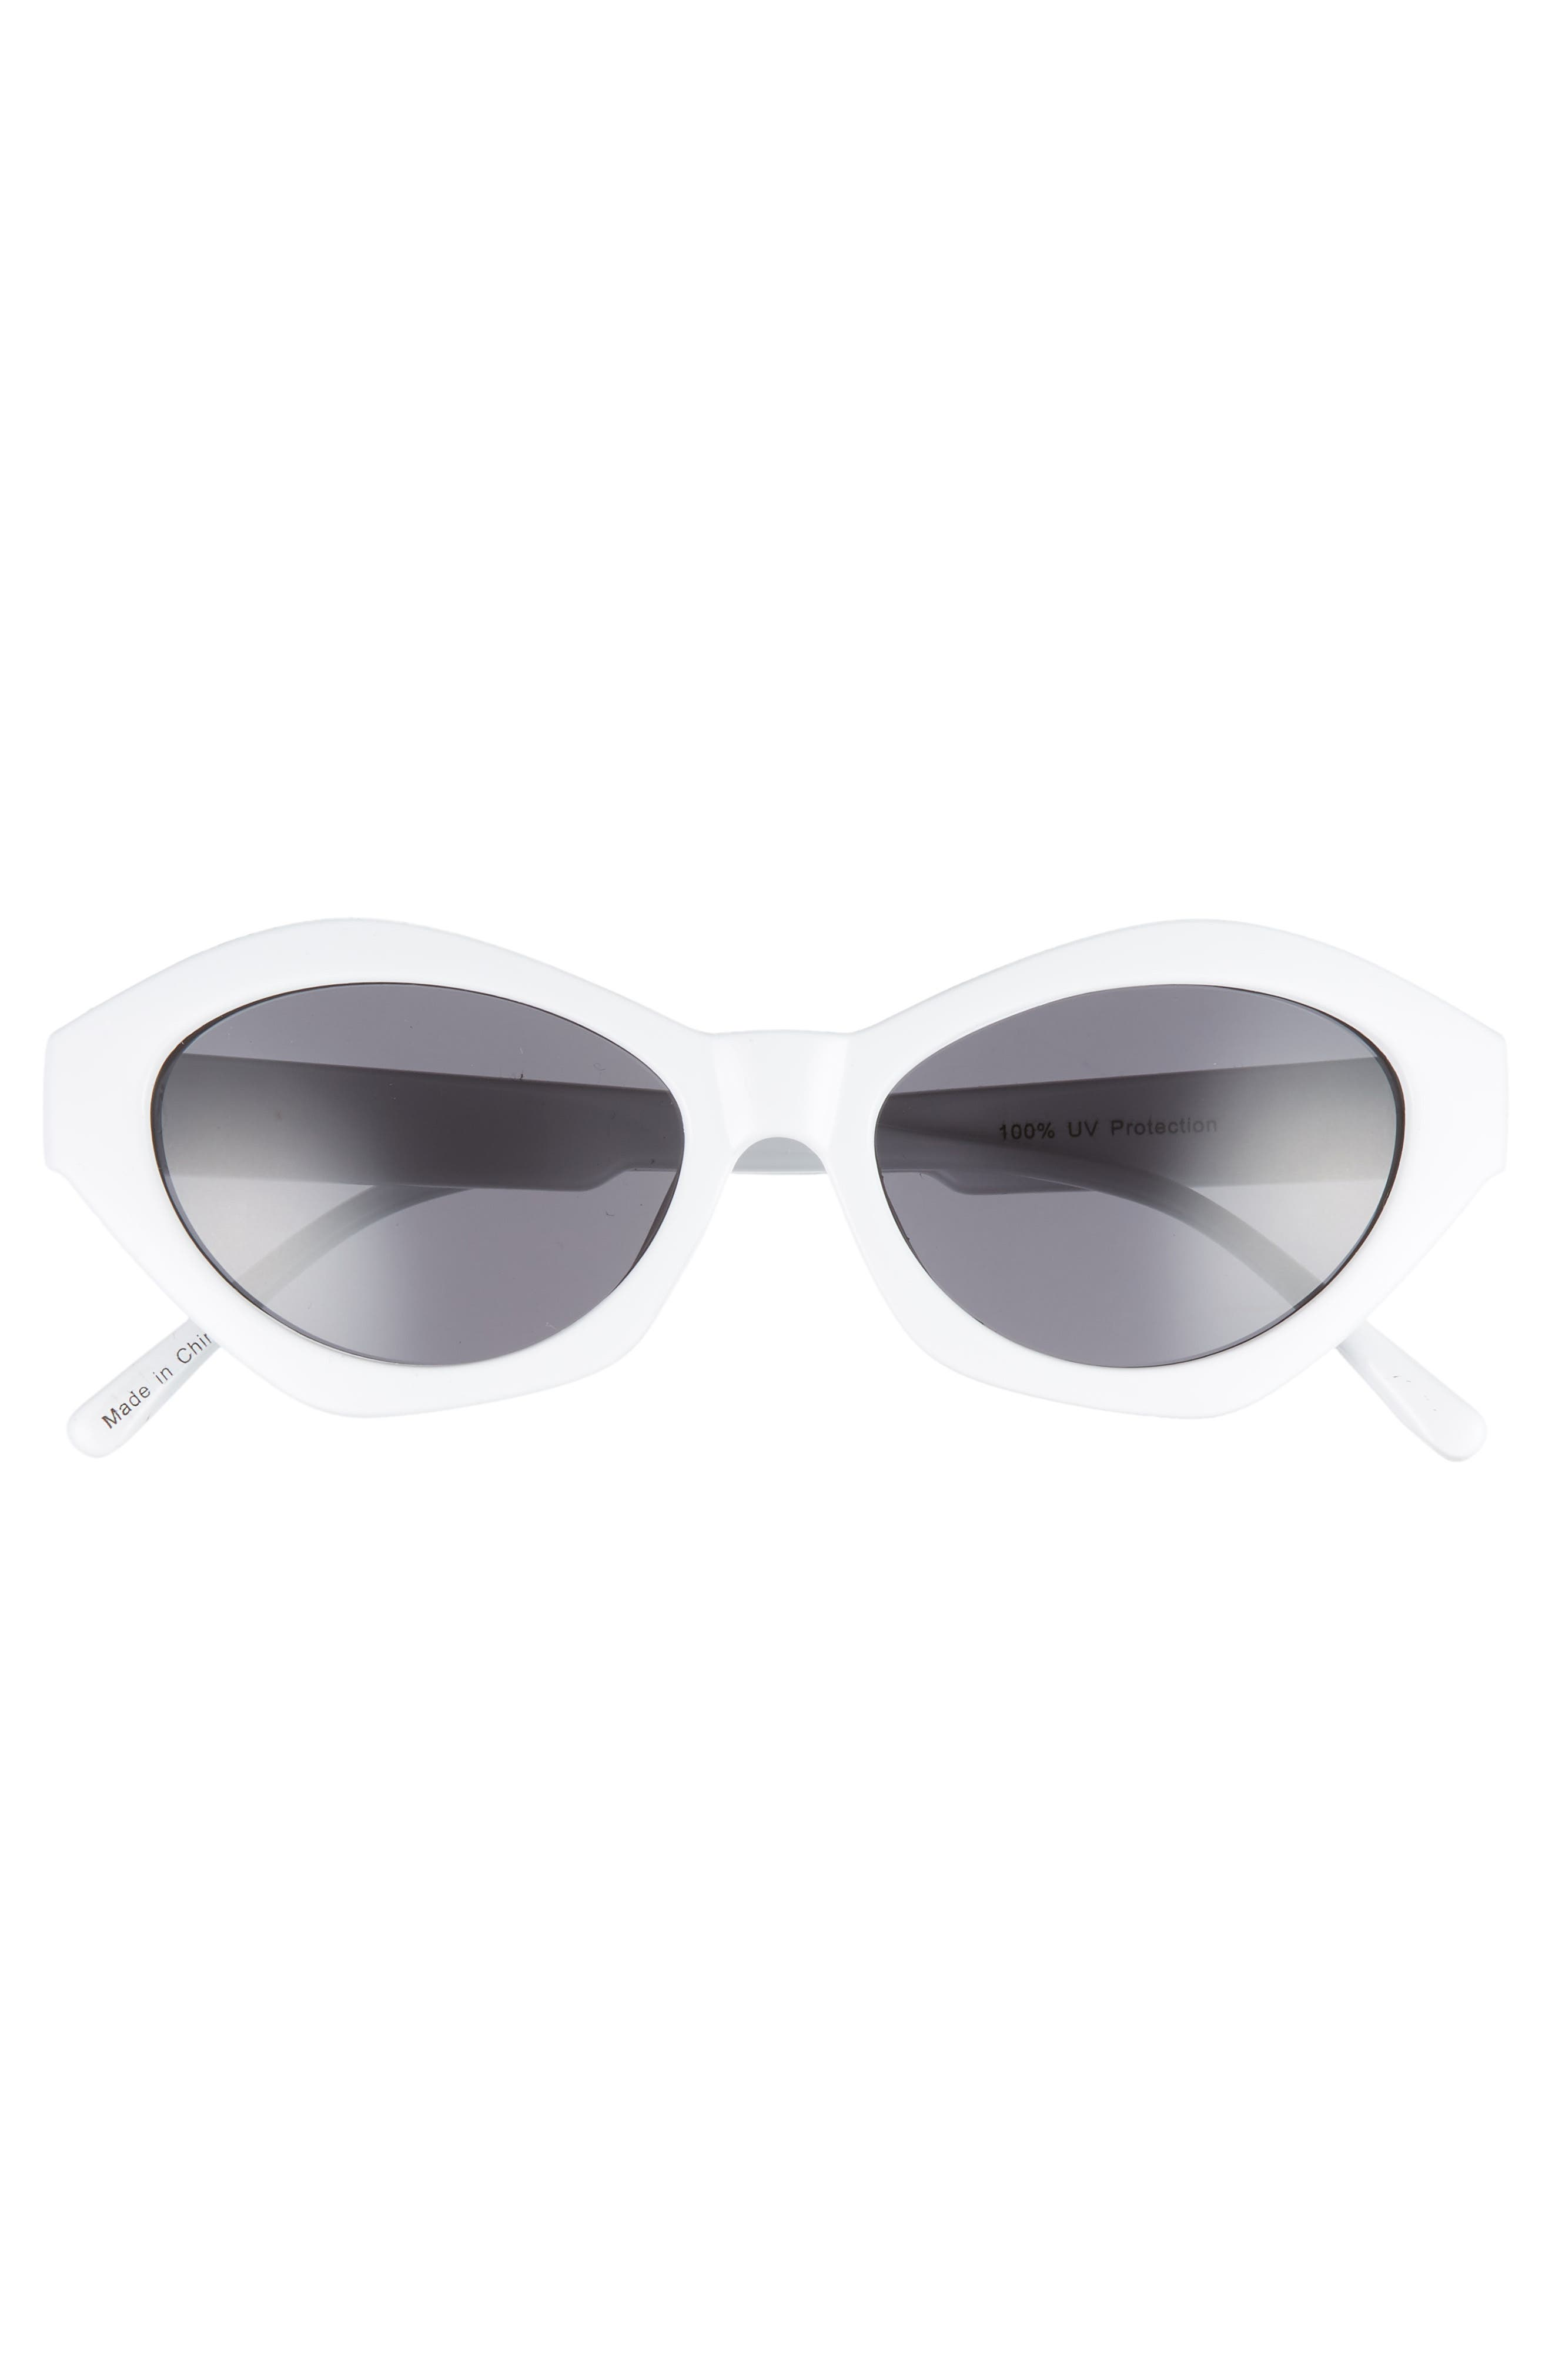 58mm Curved Cat Eye Sunglasses,                             Alternate thumbnail 3, color,                             White